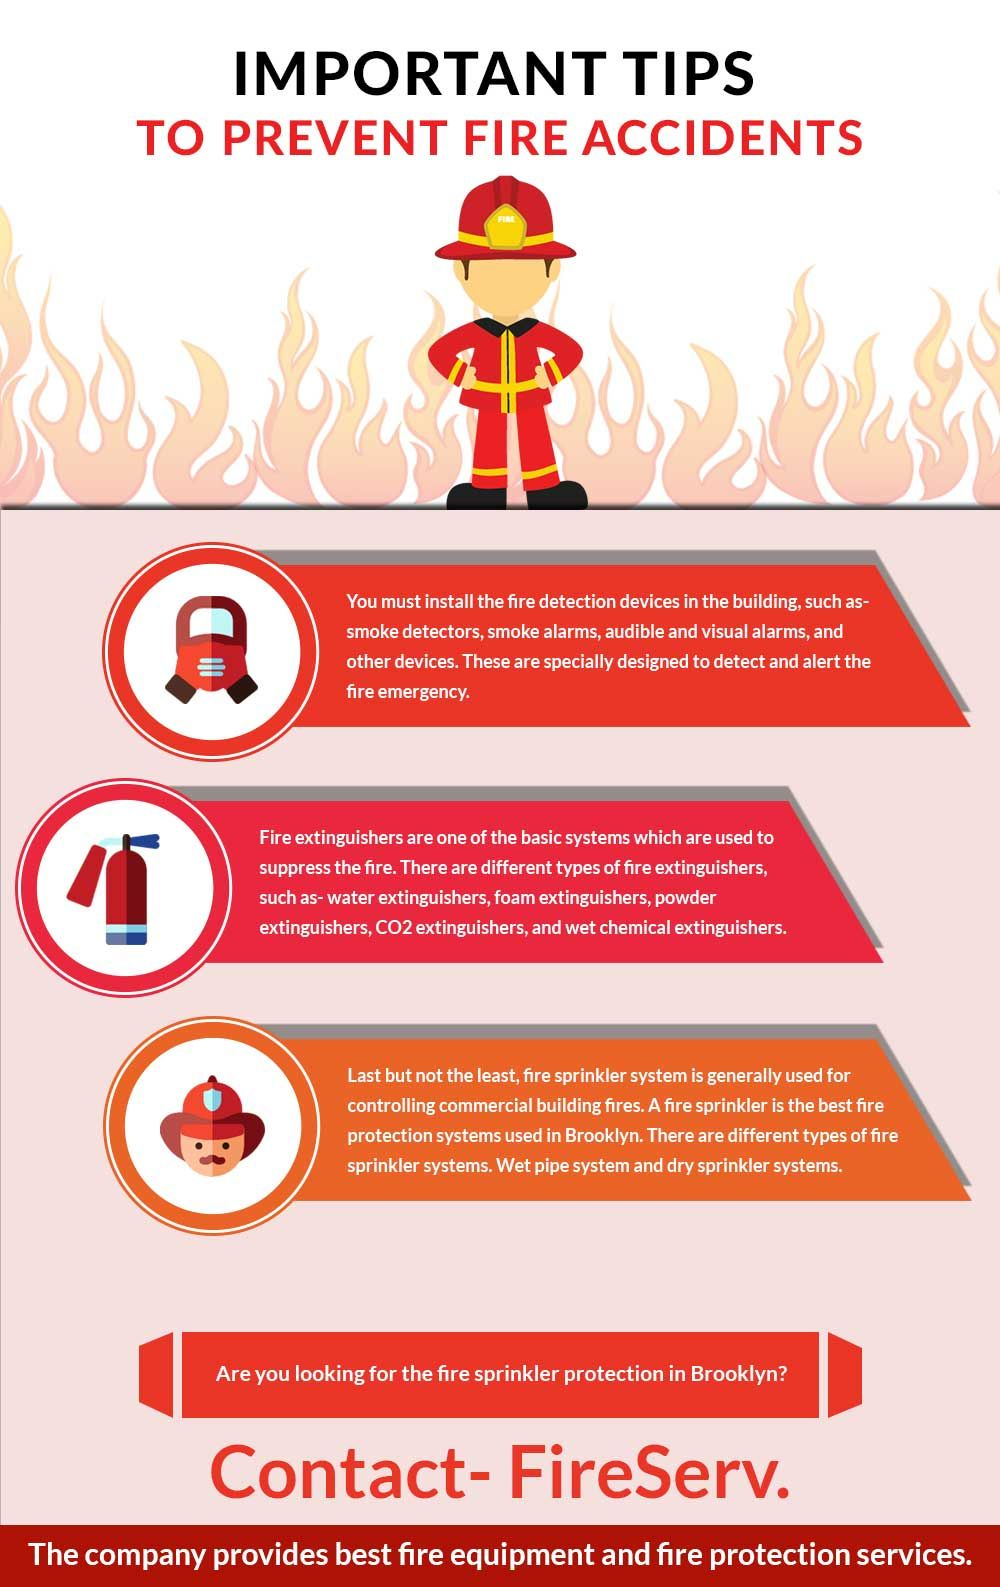 Important Tips to prevent fire accidents Fireserv Fire